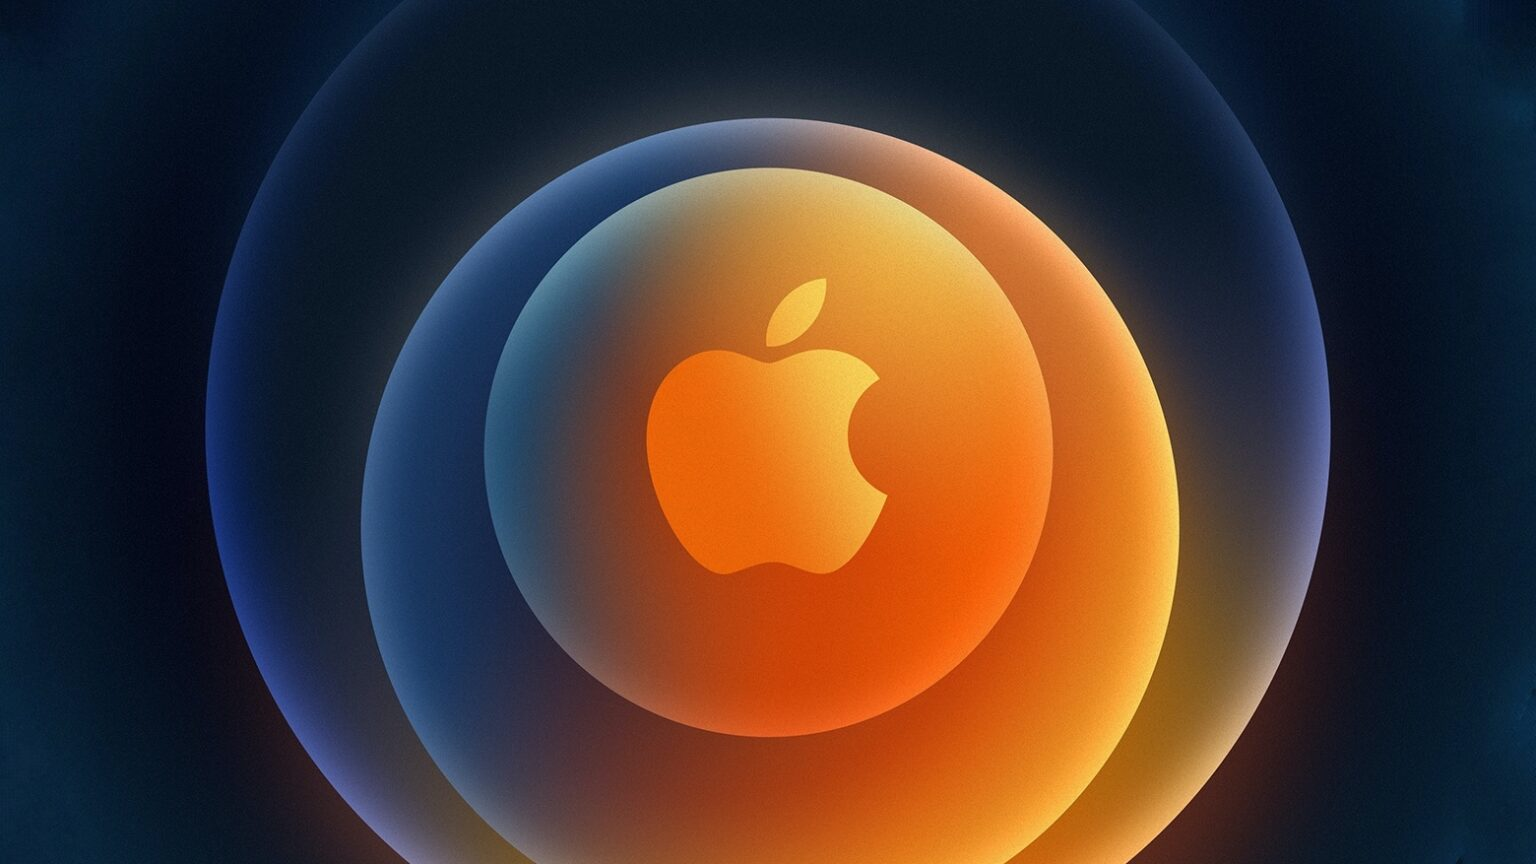 The Apple October event 2020 is officially on for October 13.